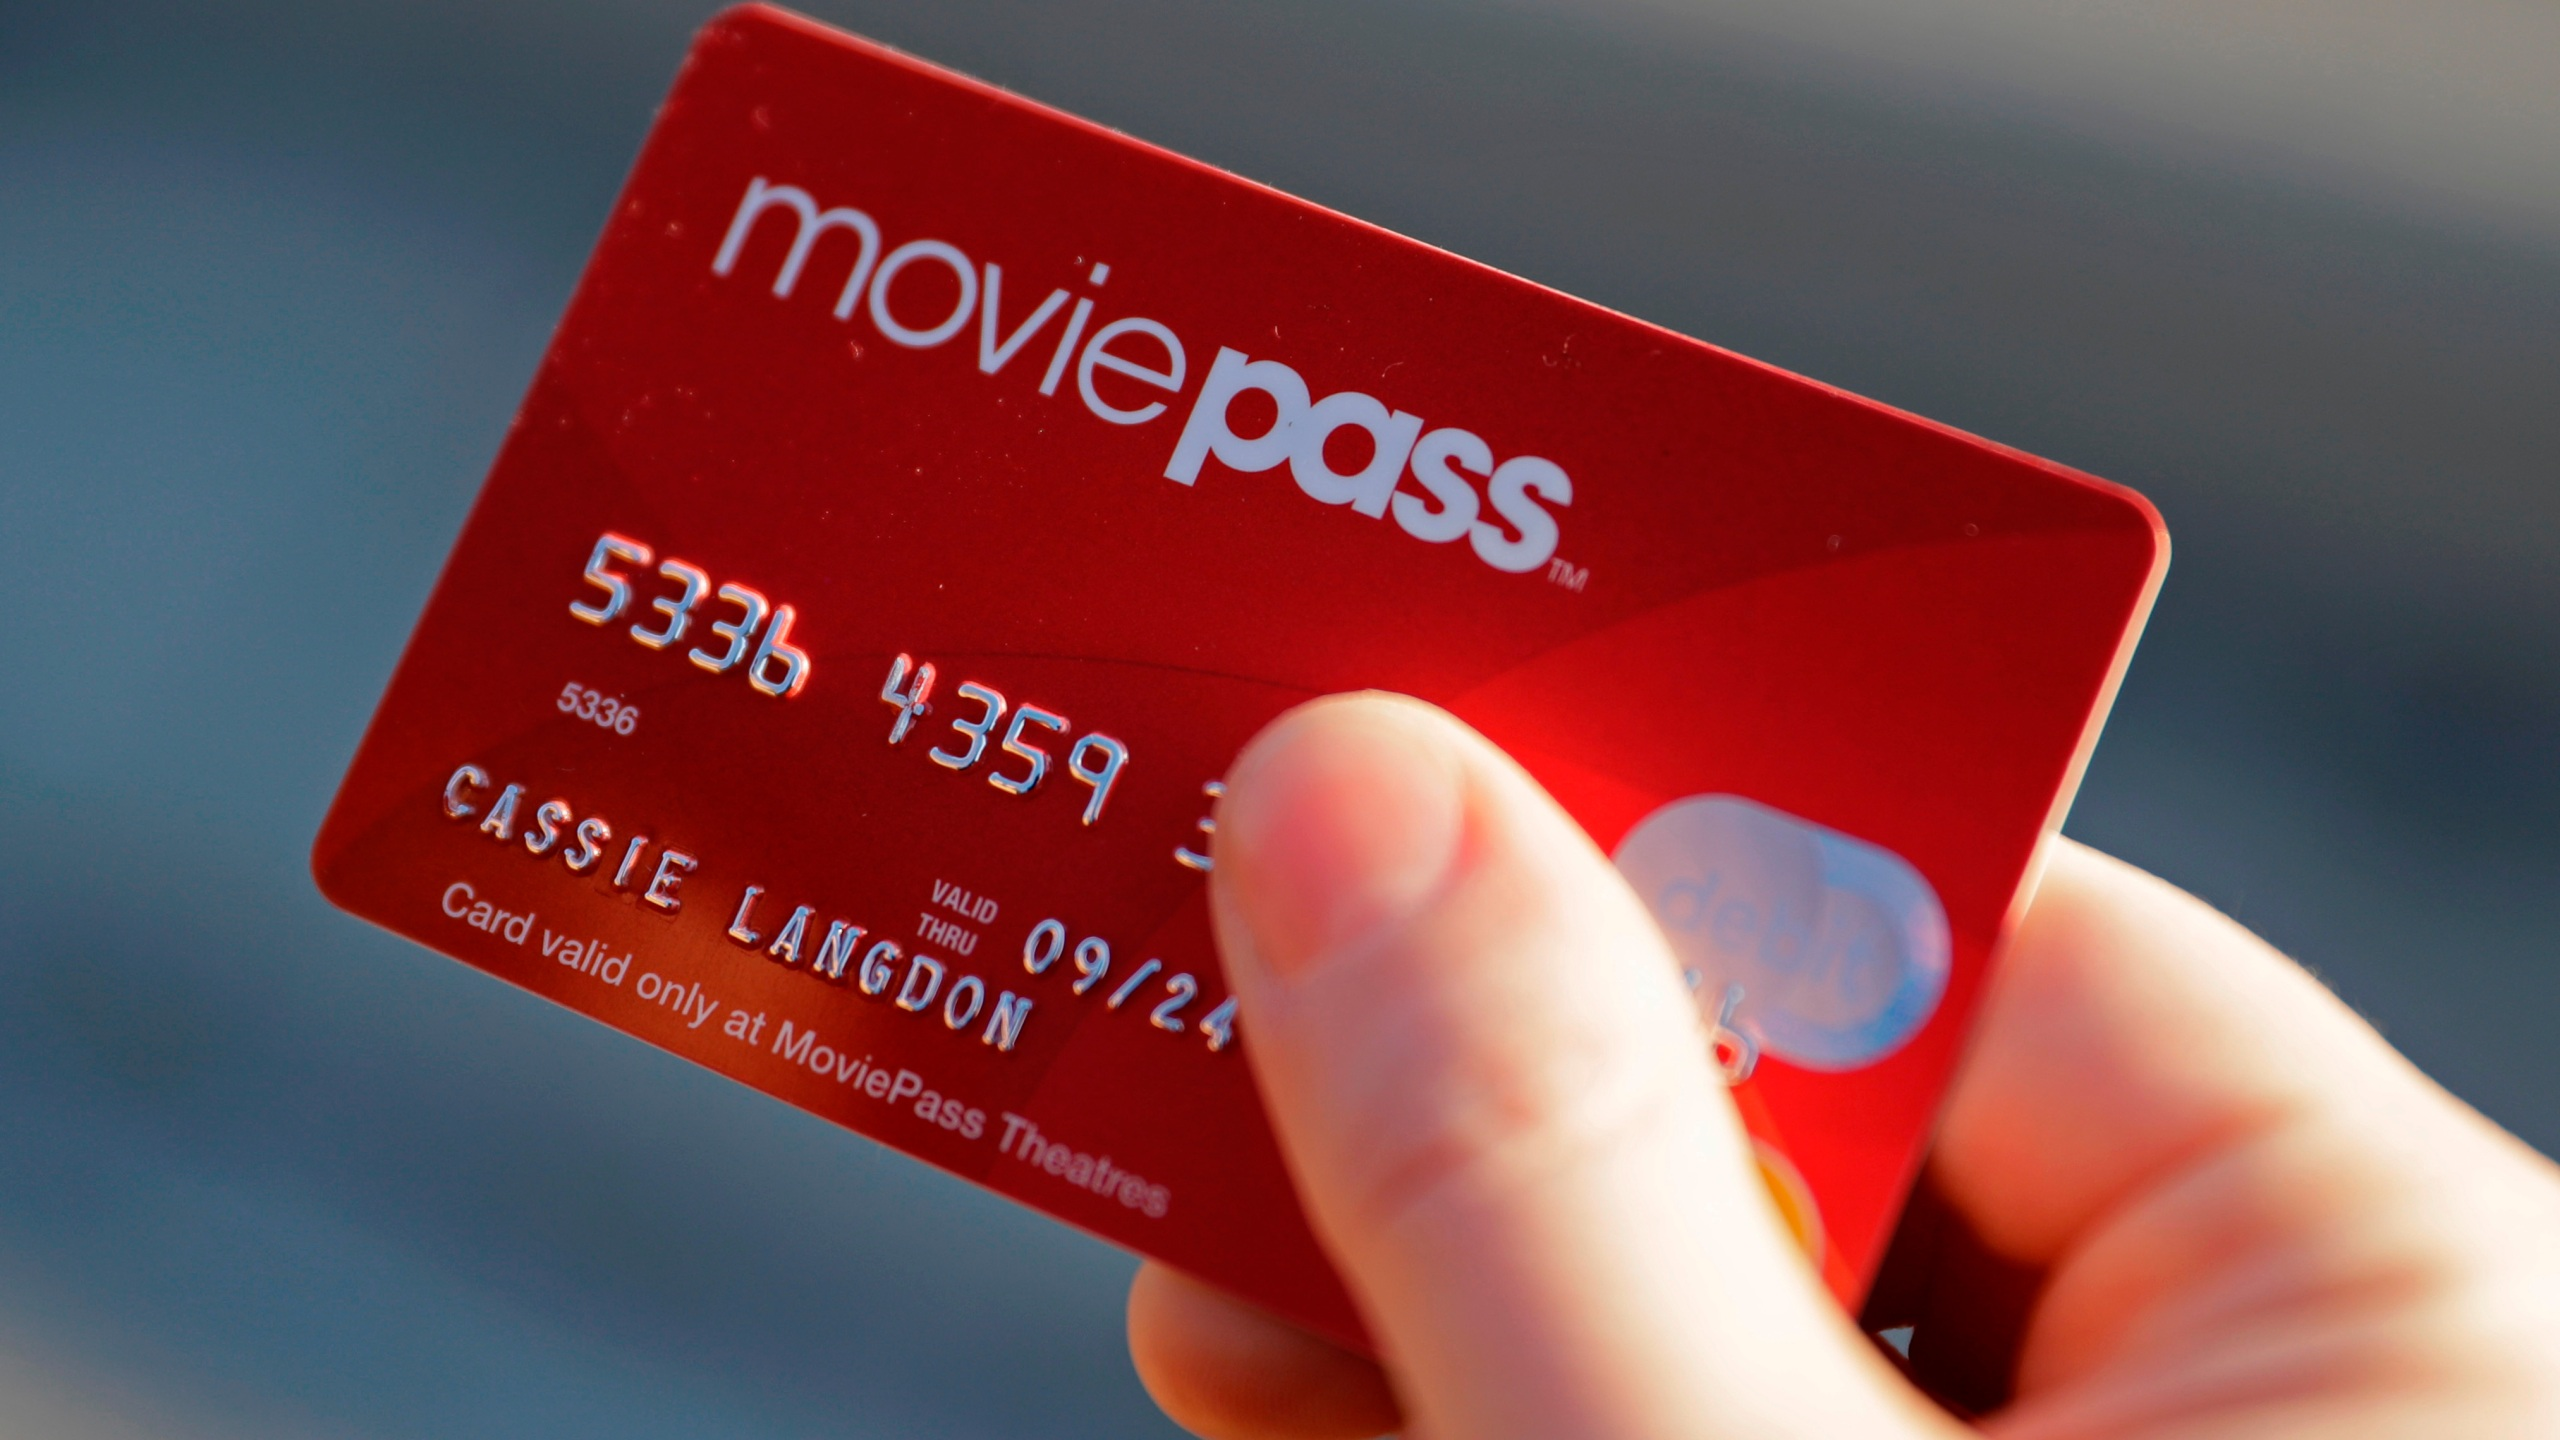 MoviePass_Price_Hike_85904-159532-159532.jpg00238656